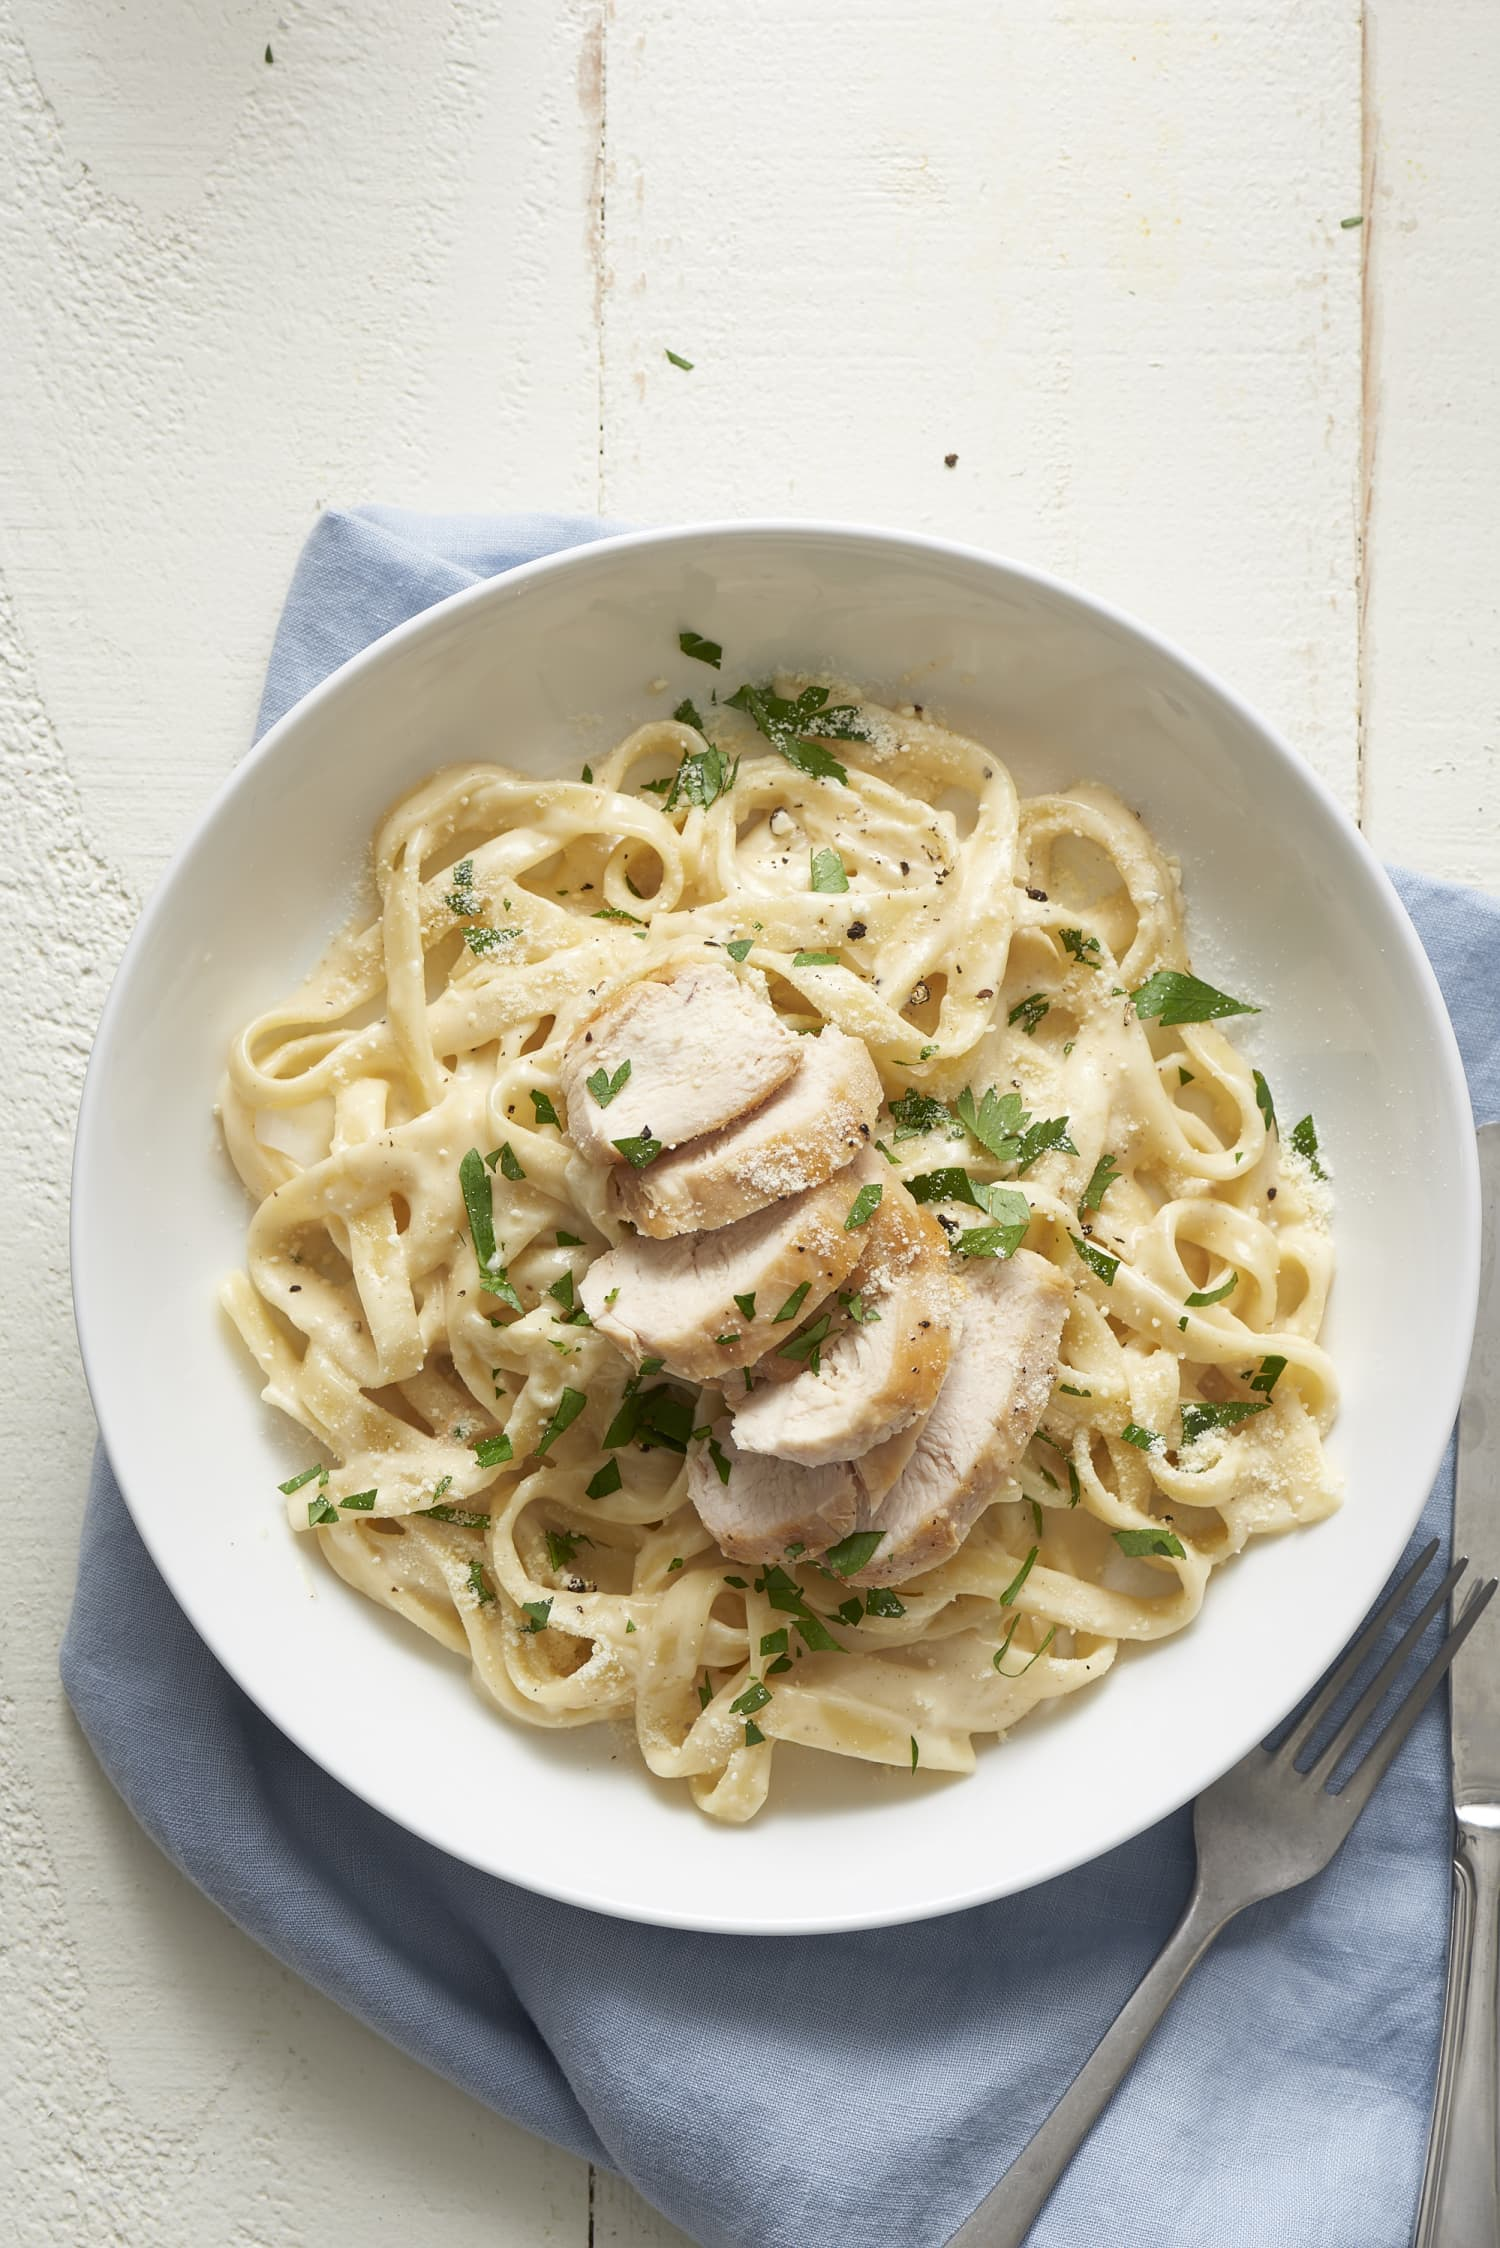 How To Make Classic Chicken Alfredo Pasta: The Easiest, Simplest Method